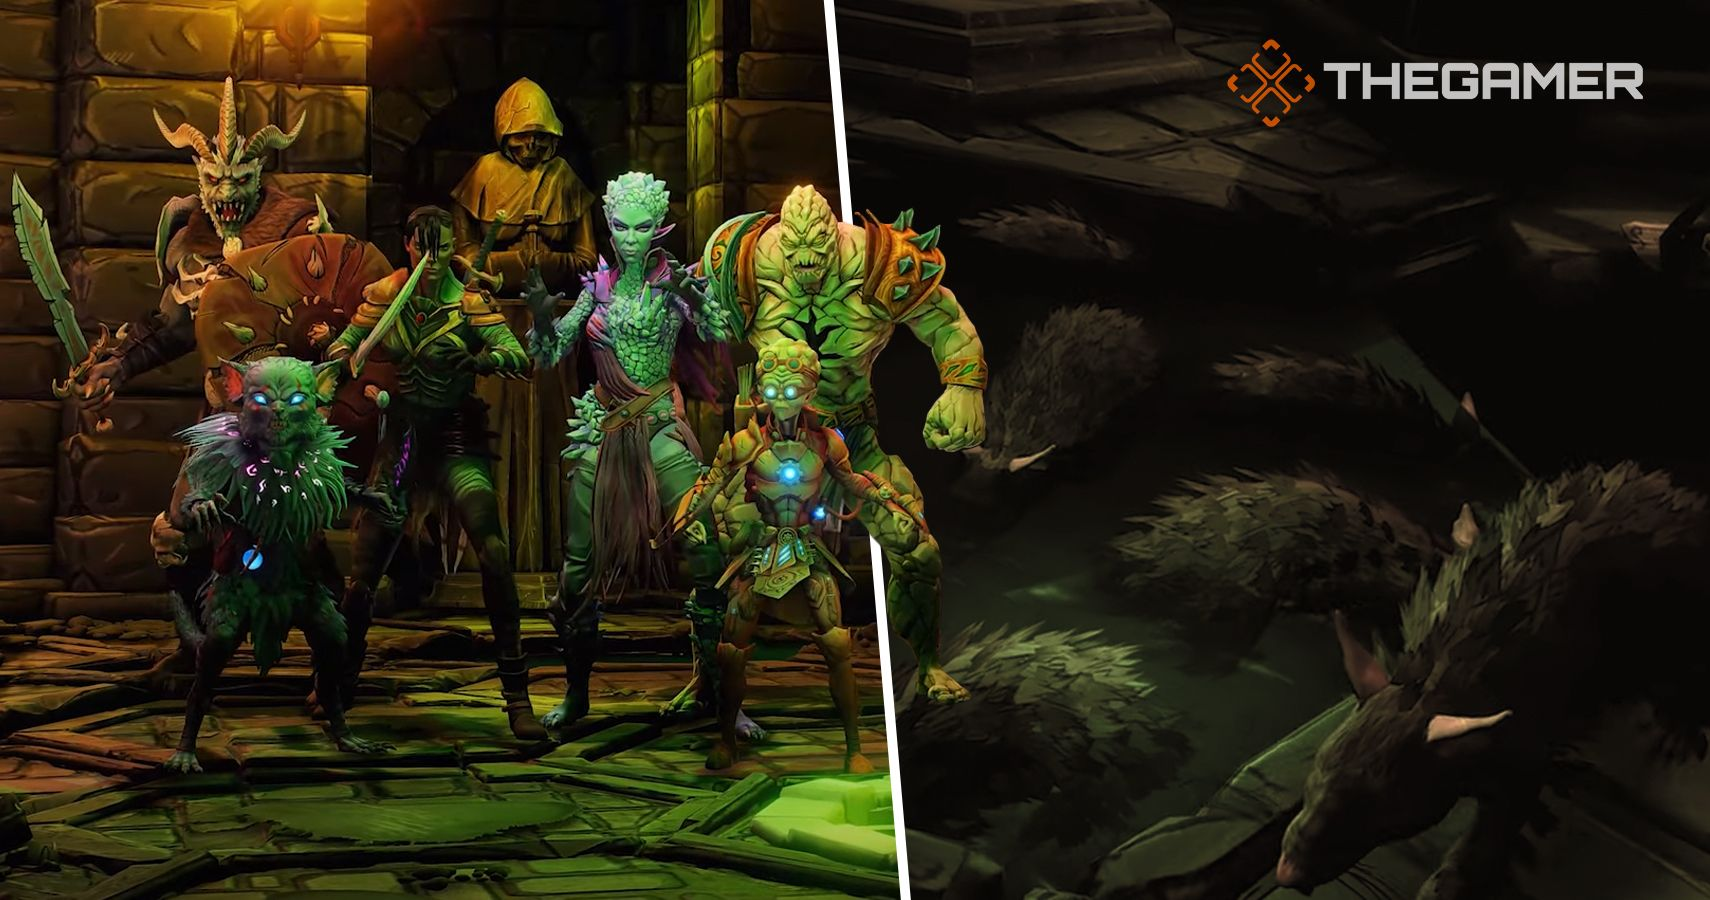 Gloomhaven Digital Adds More Unlockable Characters And... Sewers In Latest Update